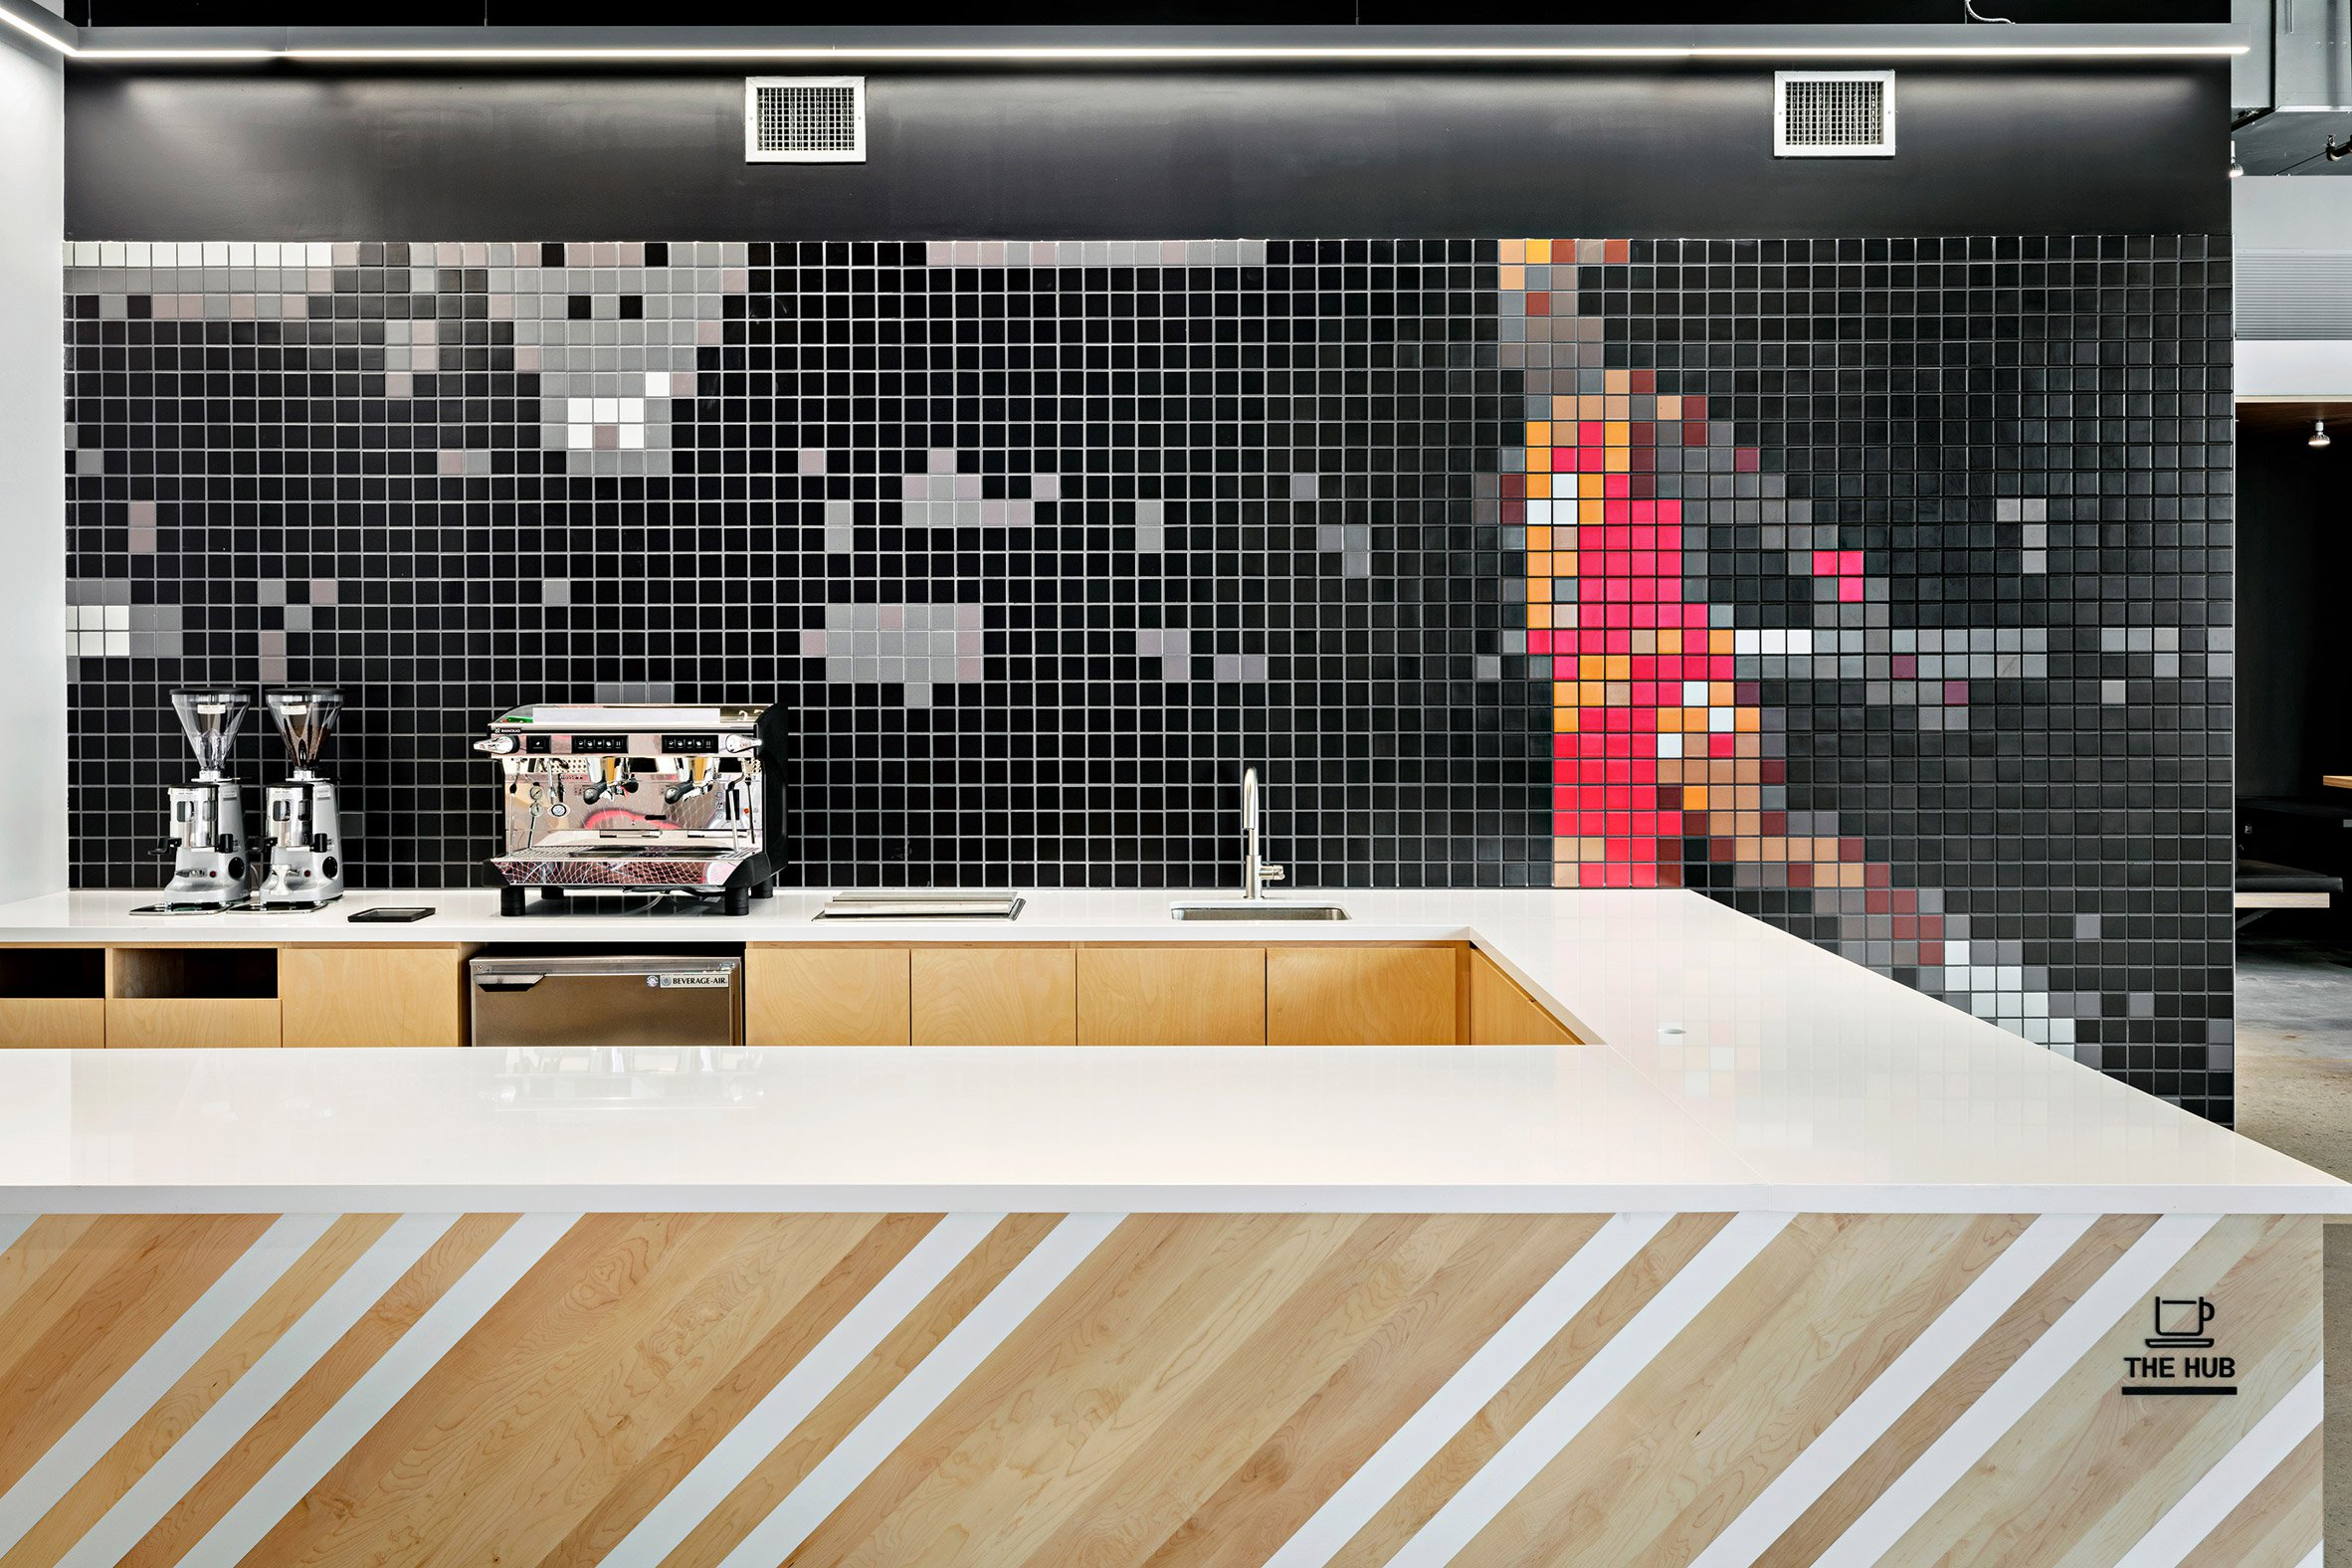 nike-nyhq-architecture-offices-new-york-usa_dezeen_2364_col_0.jpg